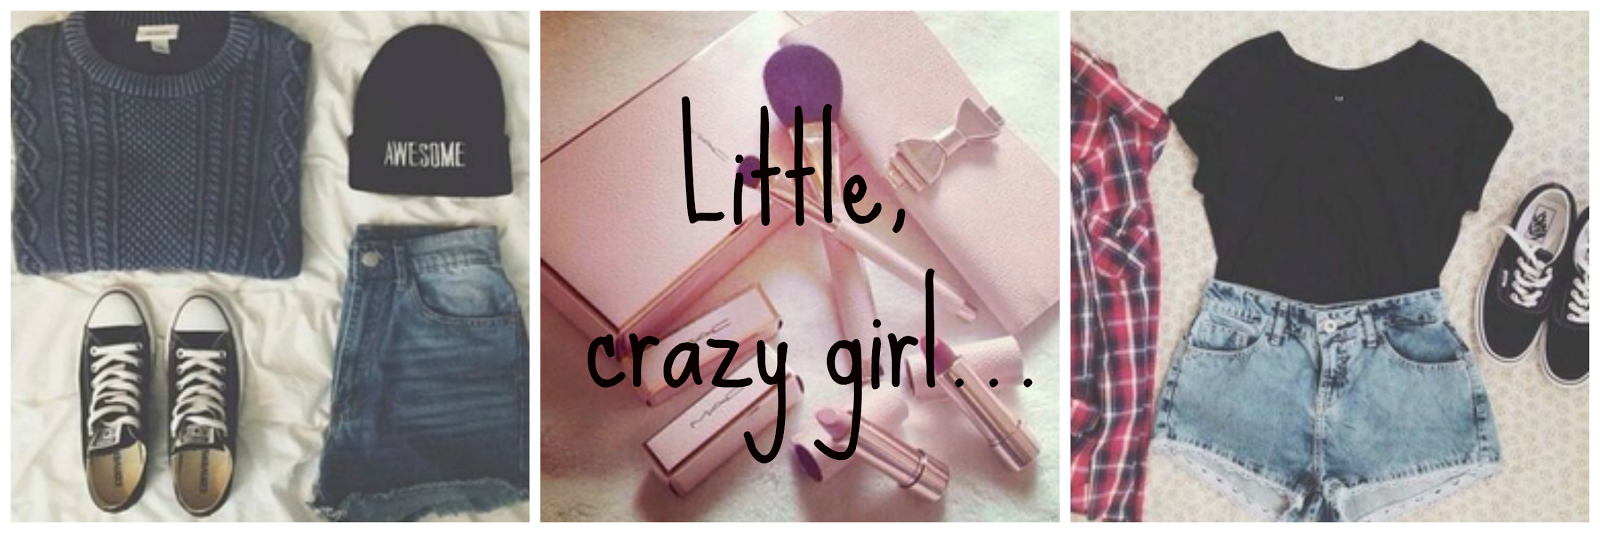 Little, crazy girl...